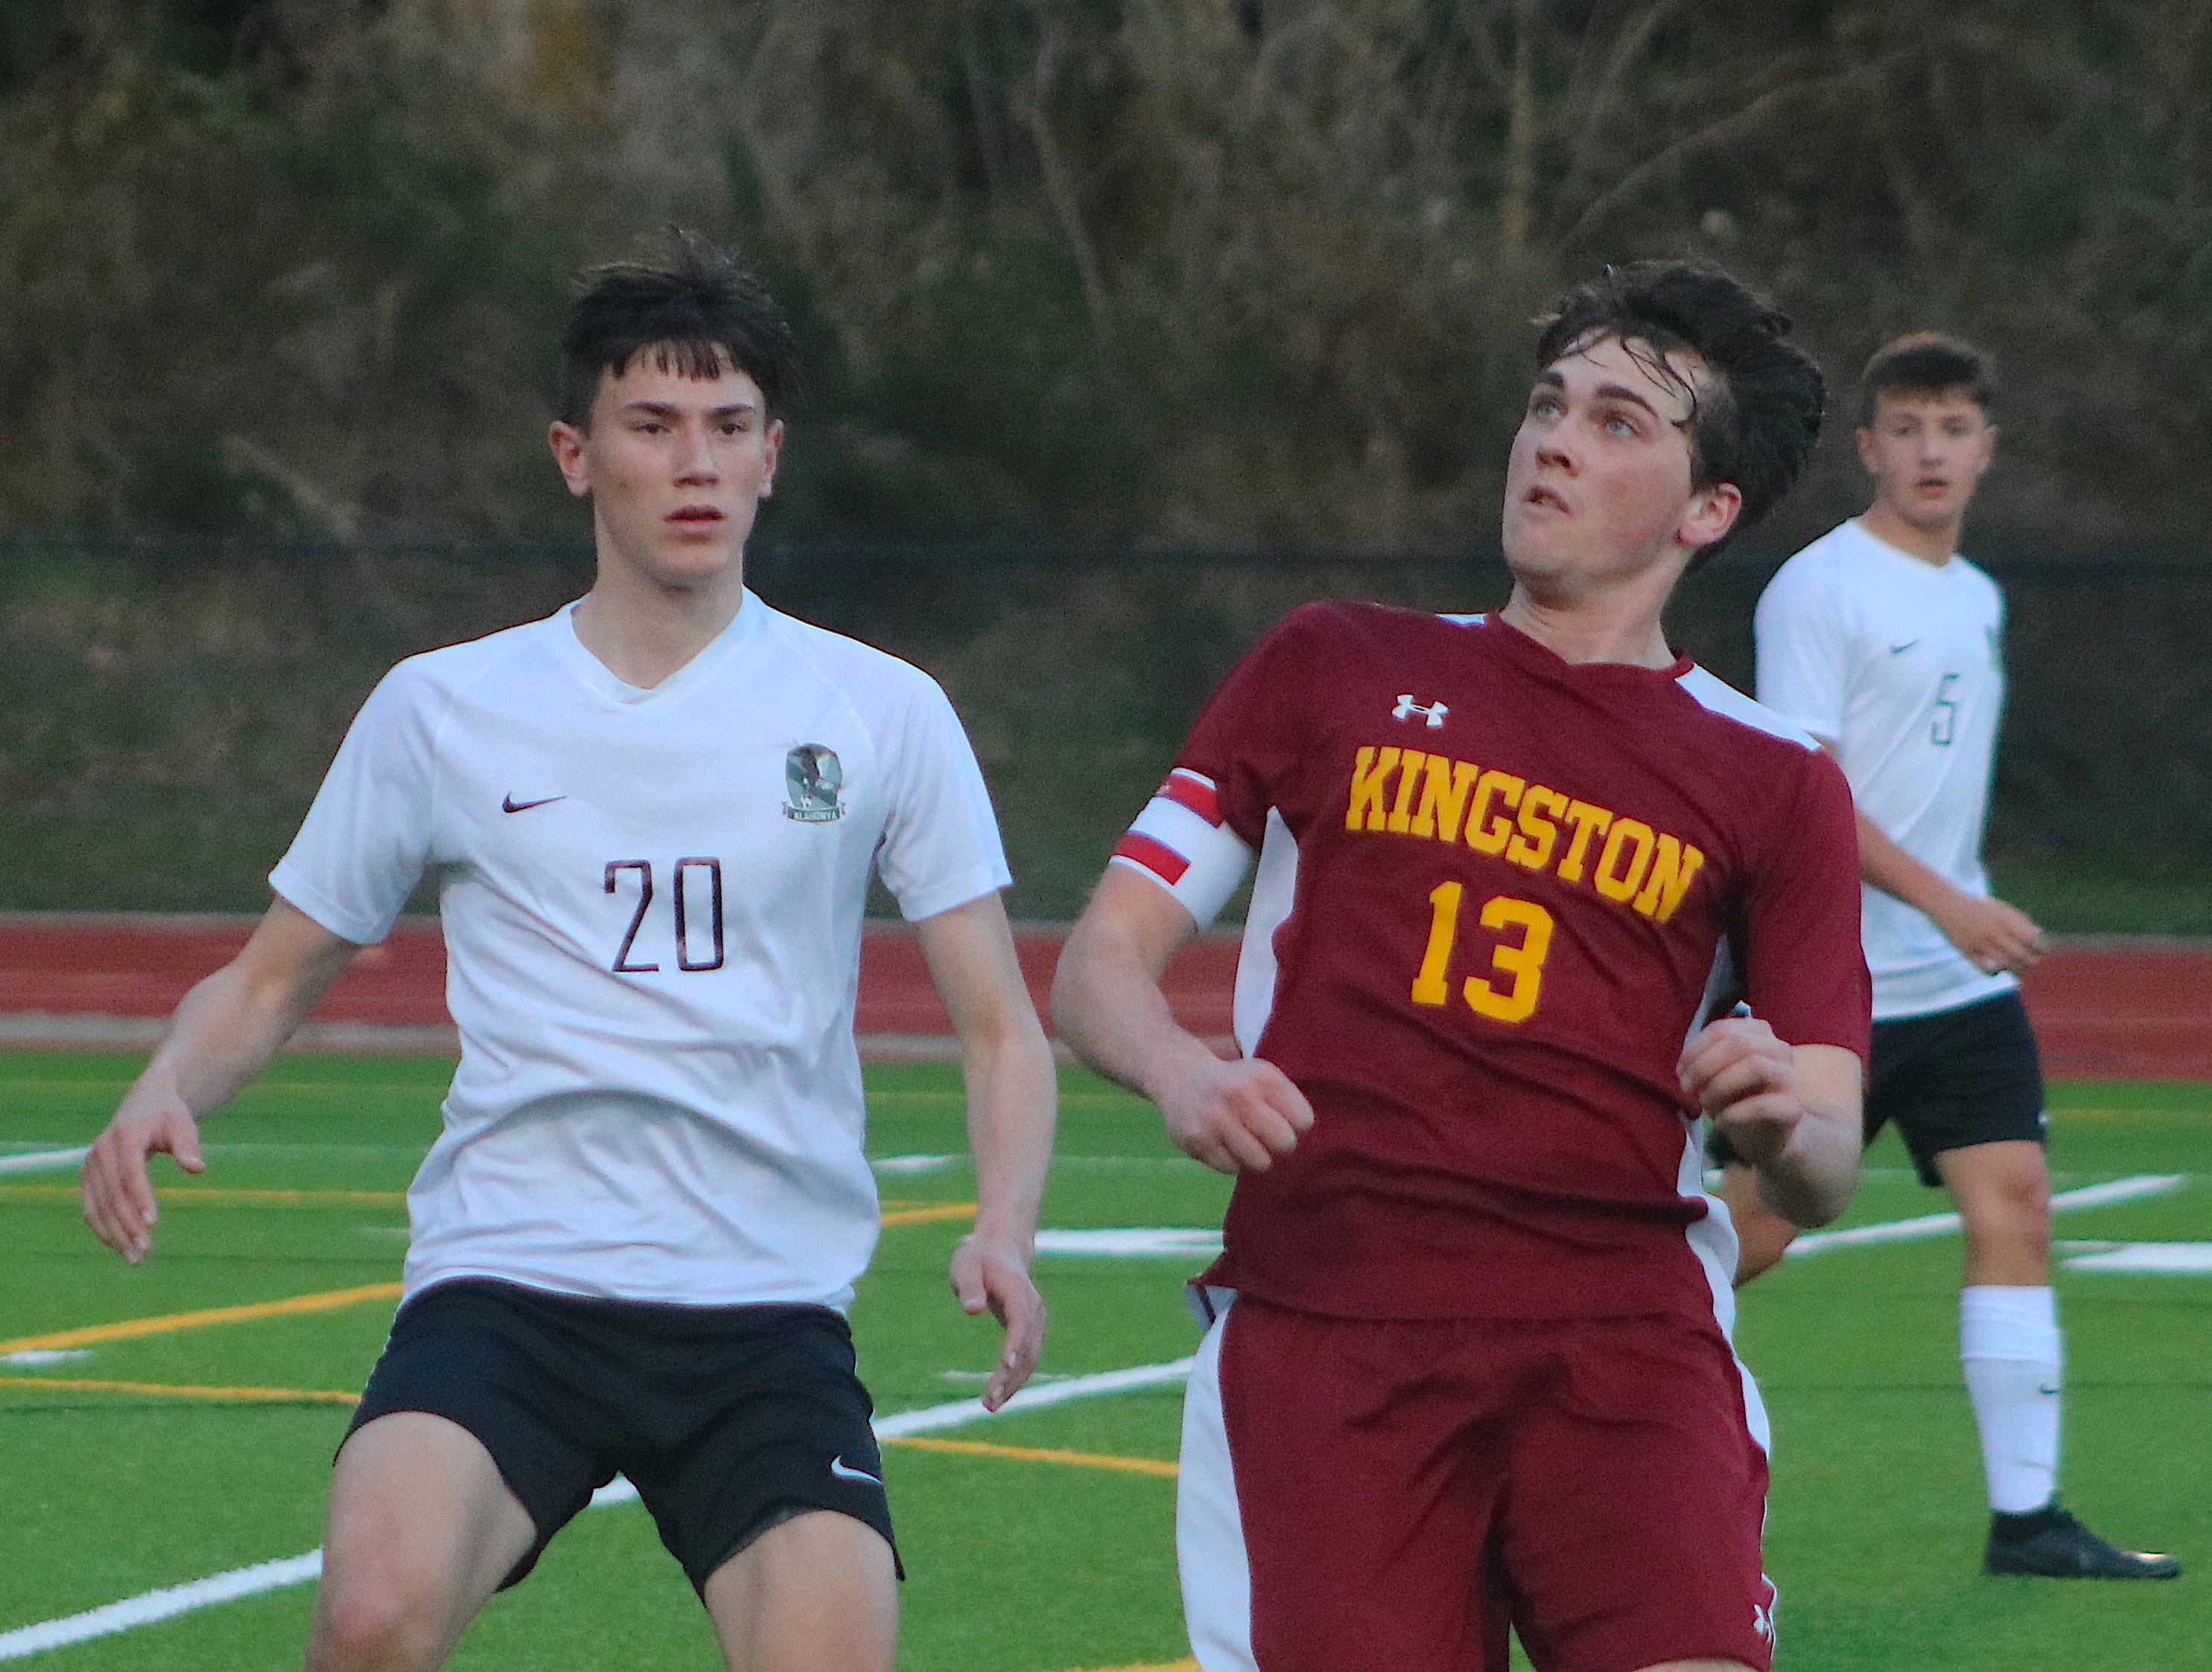 Kingston's boys soccer team defeated Klahowya 2-0 on March 26, 2019. Ben Hewett and Braydon Jacobs scored goals for the Buccaneers.